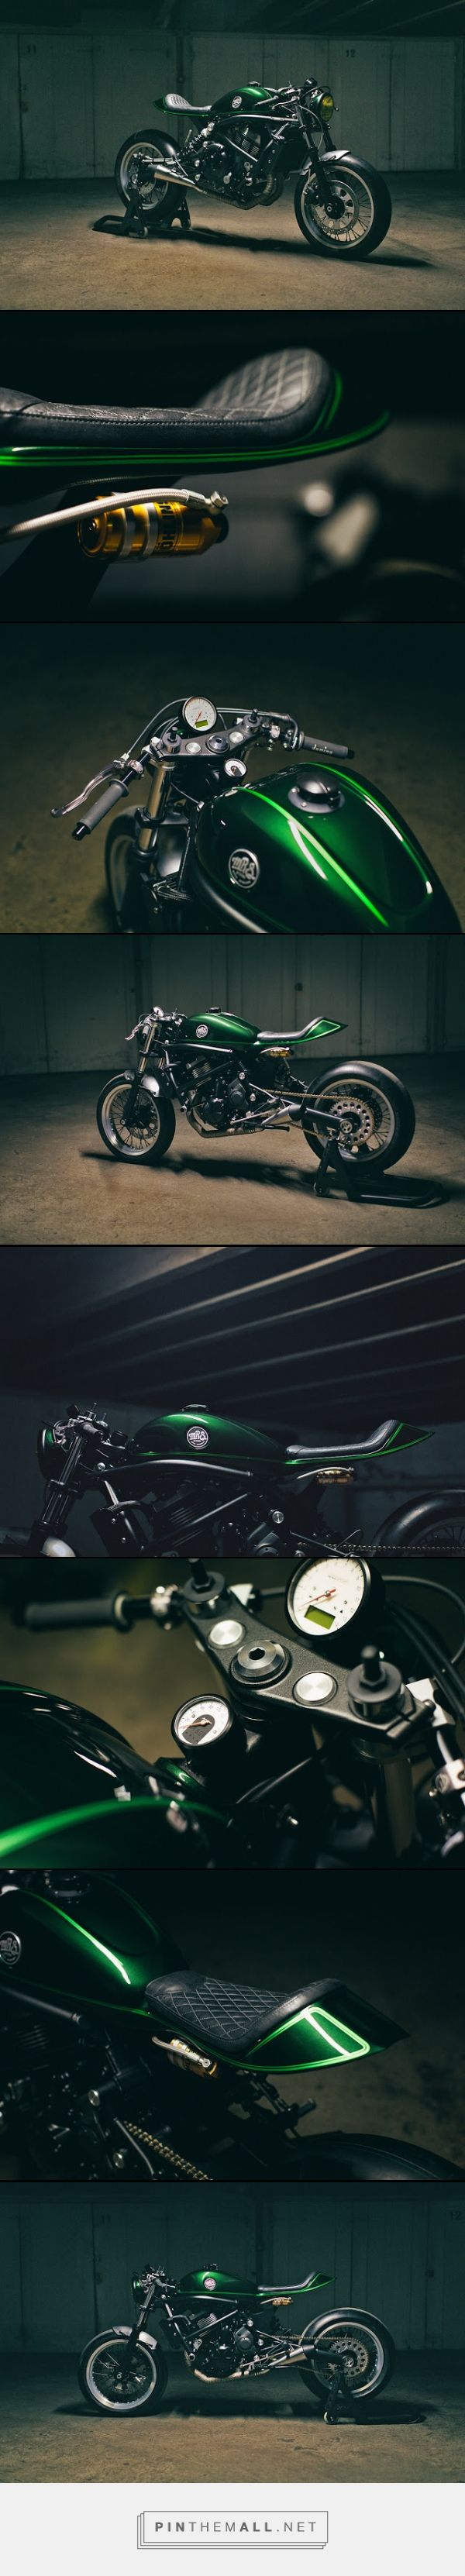 Accurate Description - Kawasaki Vulcan Cafe Racer ~ Return of the Cafe Racers - created via https://pinthemall.net